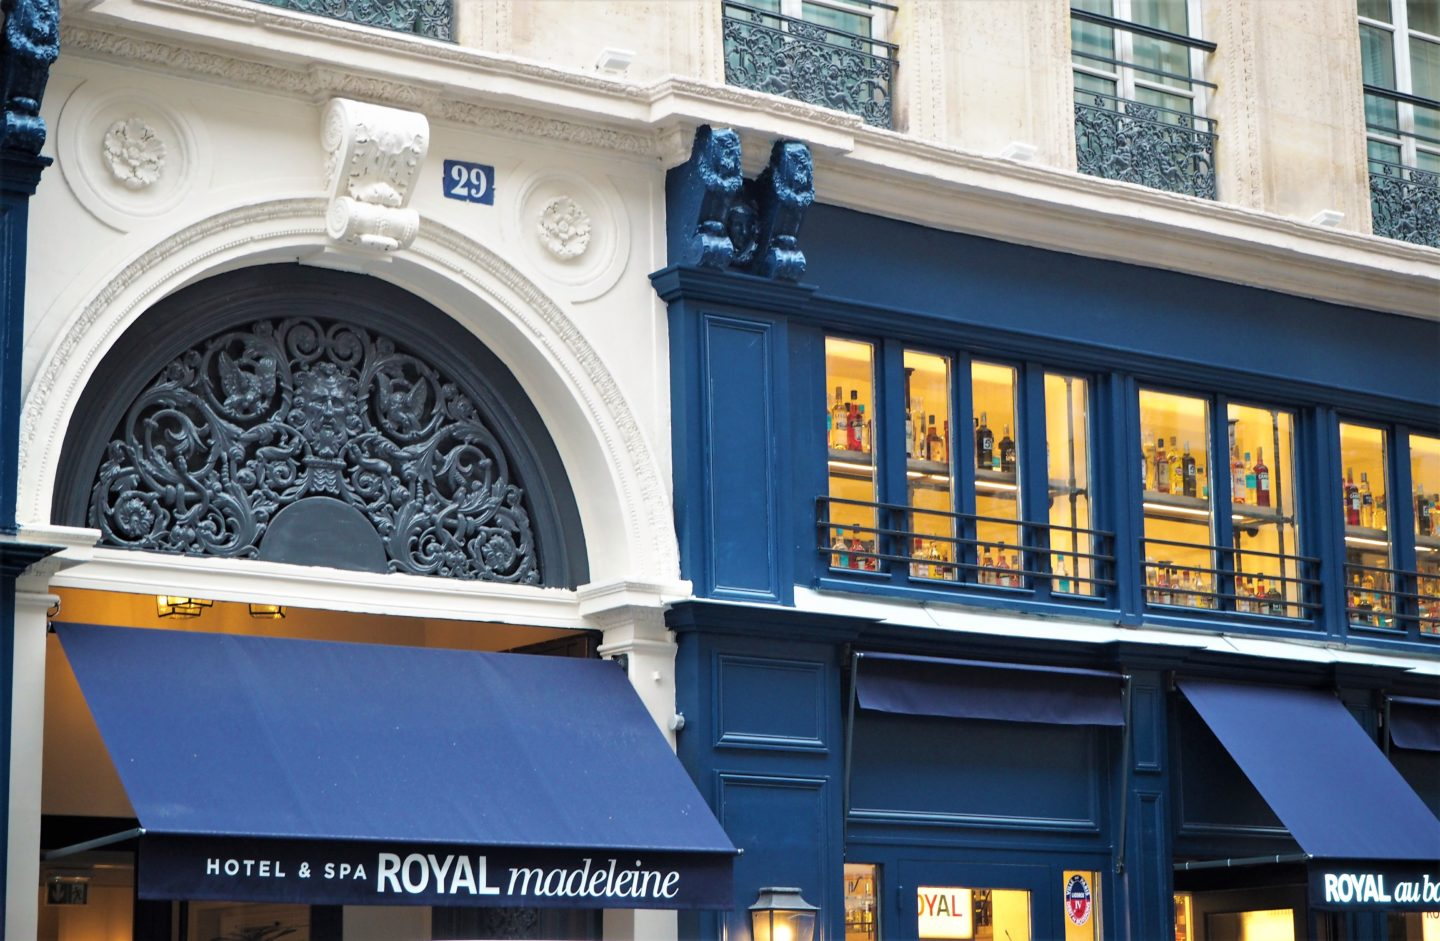 hotel royal madeleine paris devant